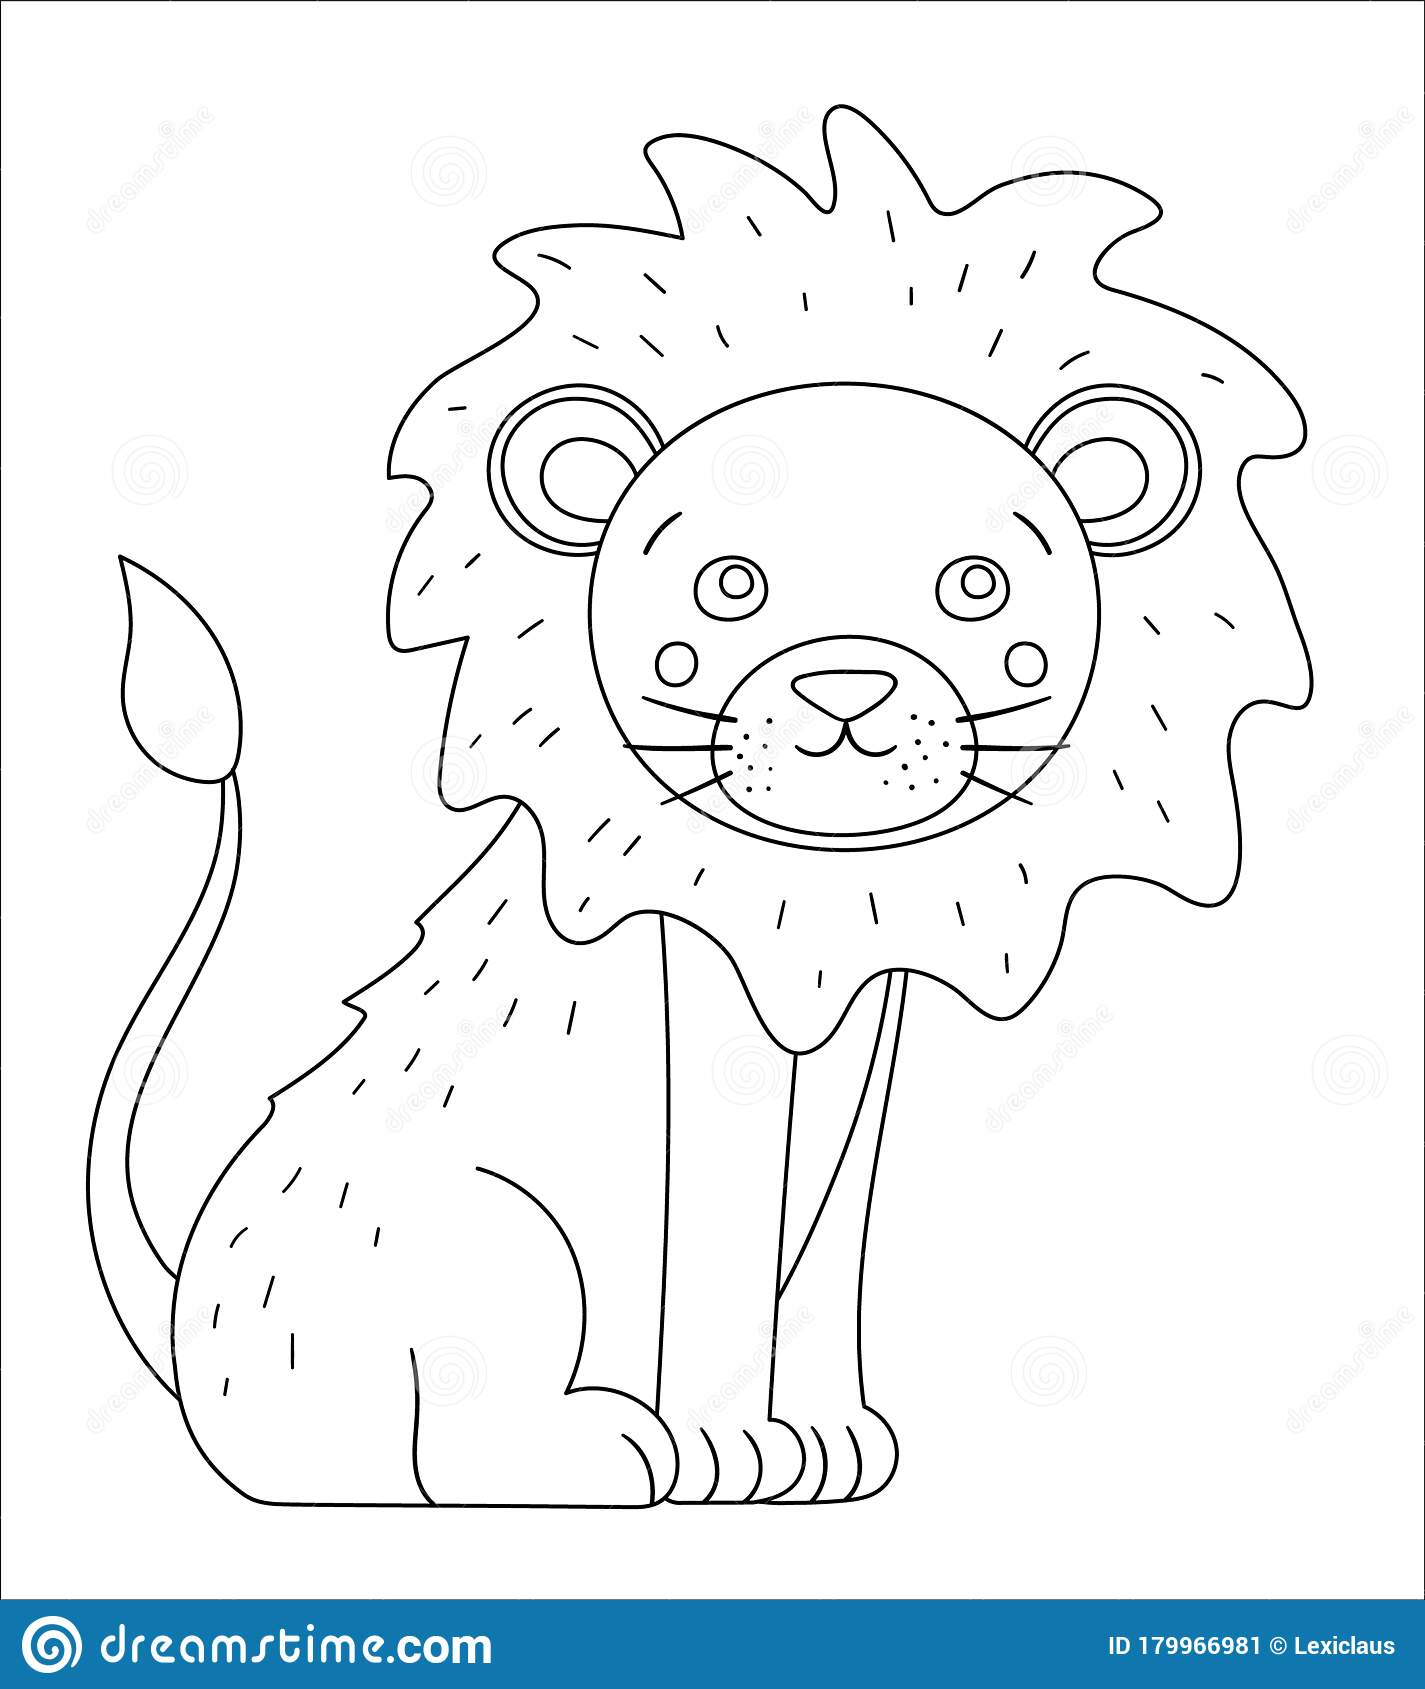 Vector Cute Lion Outline Funny Tropical Exotic Animal Black And White Illustration Fun Coloring Page For Children Jungle Summer Stock Vector Illustration Of Funny Black 179966981 Lion outline free vector we have about (9,528 files) free vector in ai, eps, cdr, svg vector illustration graphic art design format. dreamstime com